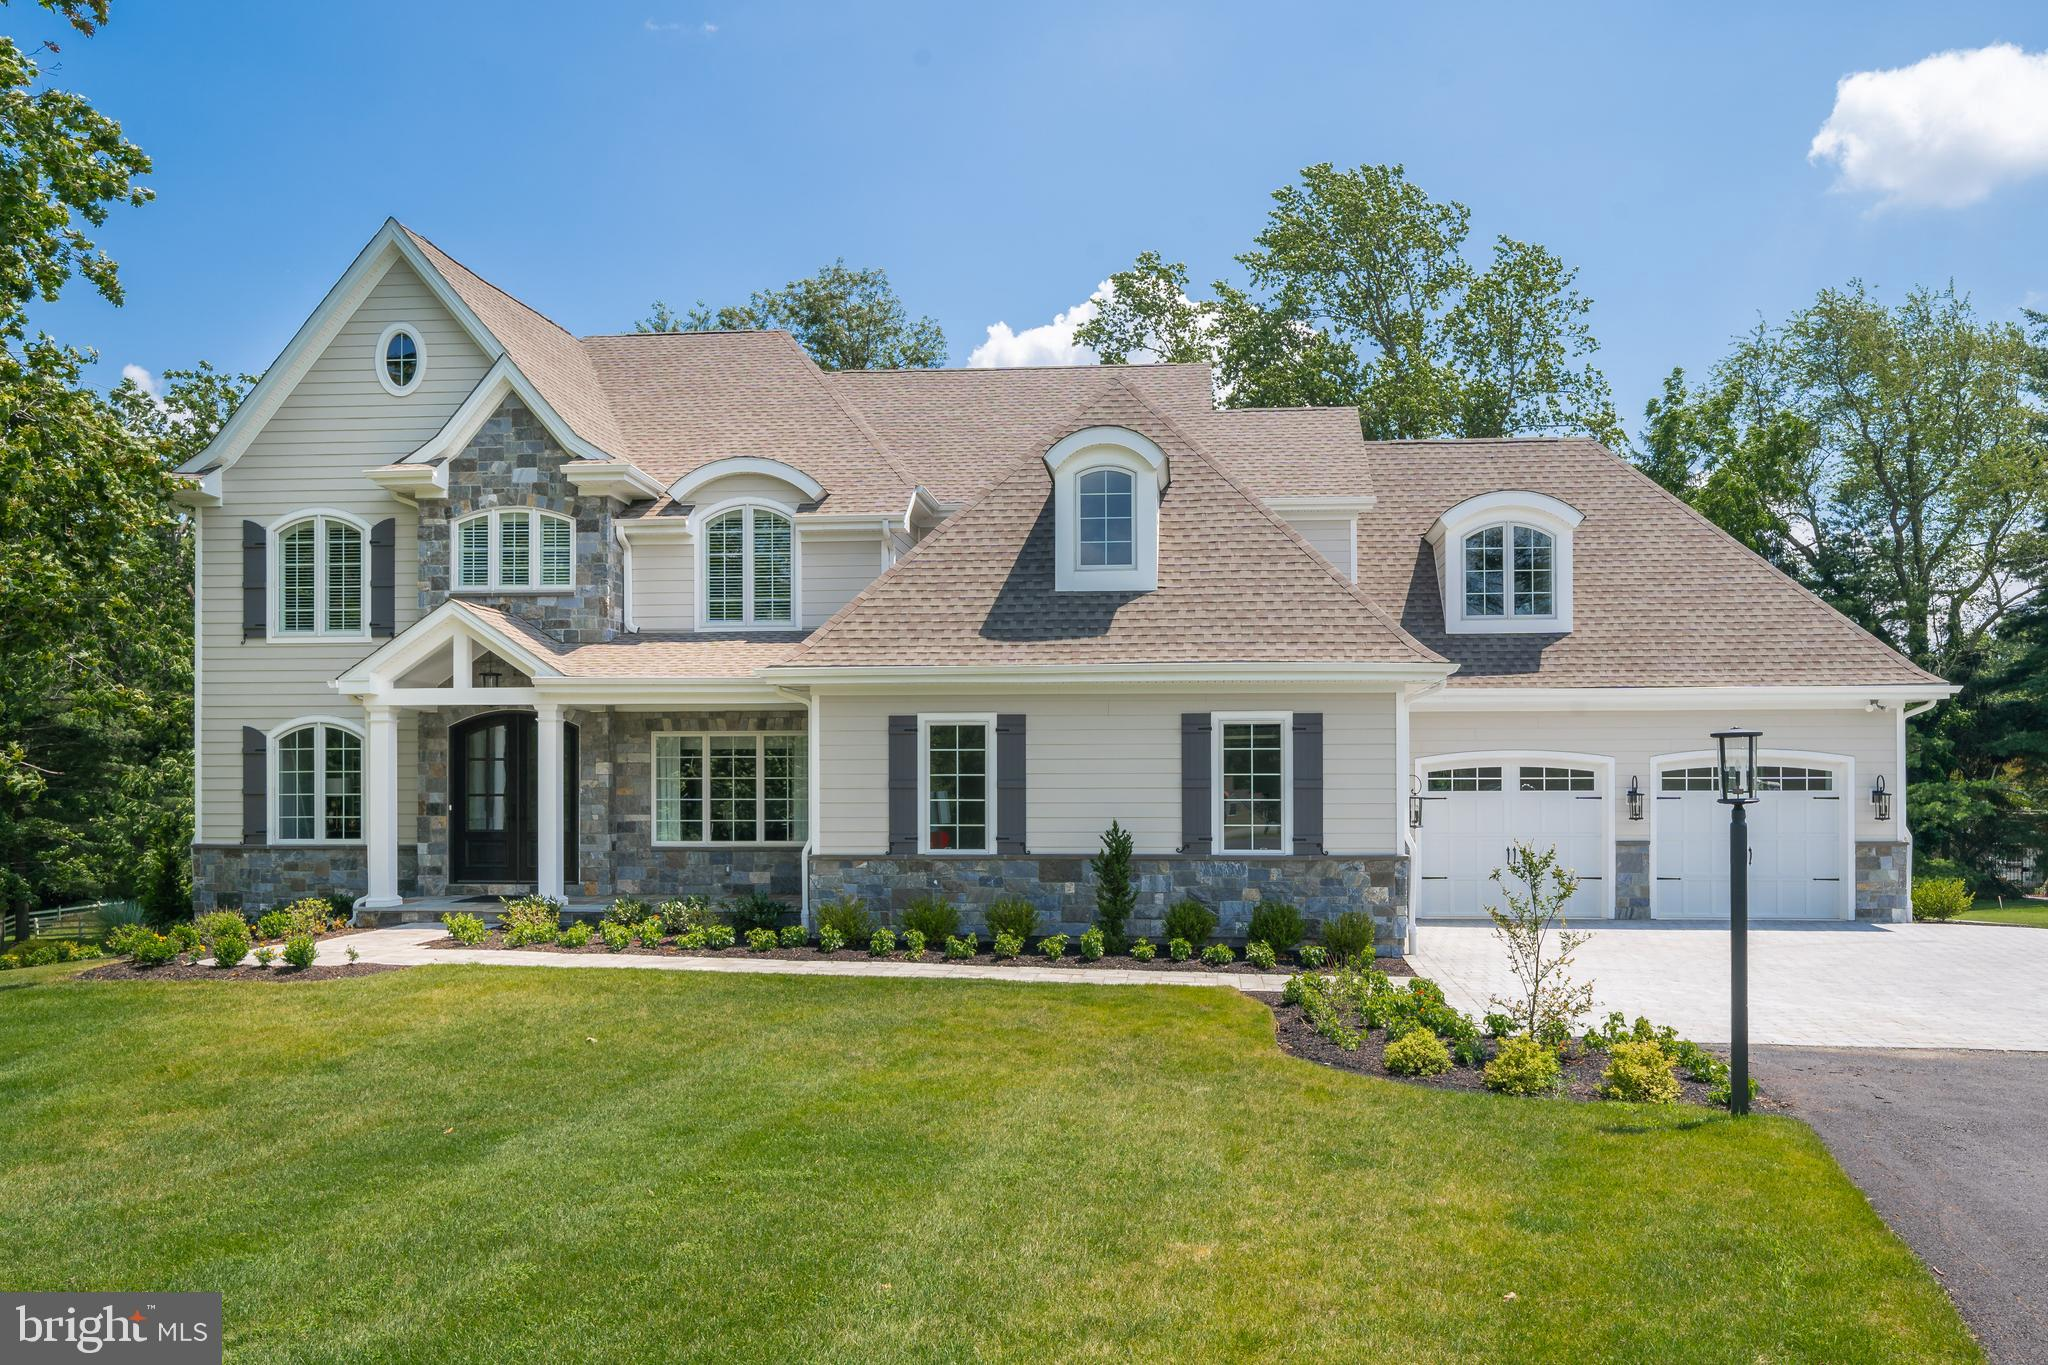 1300 S CONCORD ROAD, WEST CHESTER, PA 19382